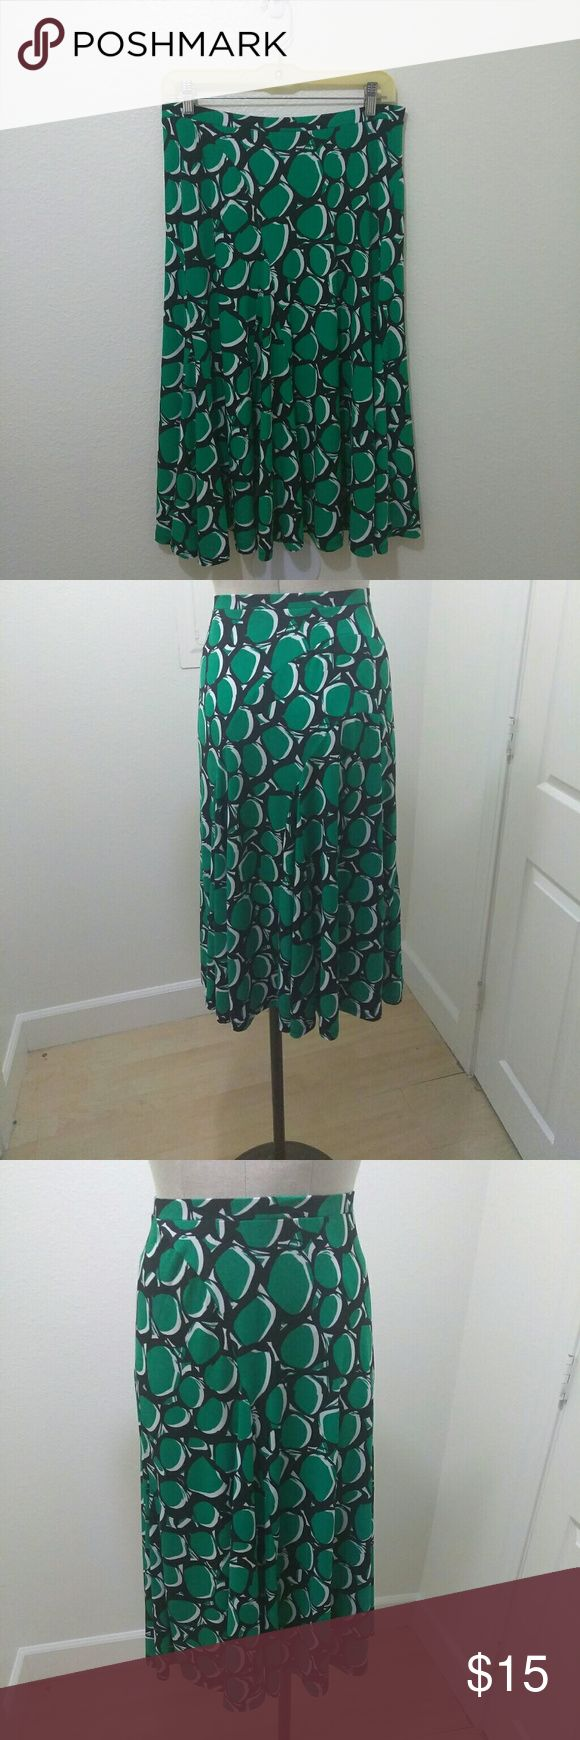 Nine West Soft and Flowy Midi Skirt Nine West Waistband, Multicolored Printed Green,white and black Women's skirt... Waist:30 inches... Length:28.5 inches... Excellent Condition. Nine West Skirts Midi